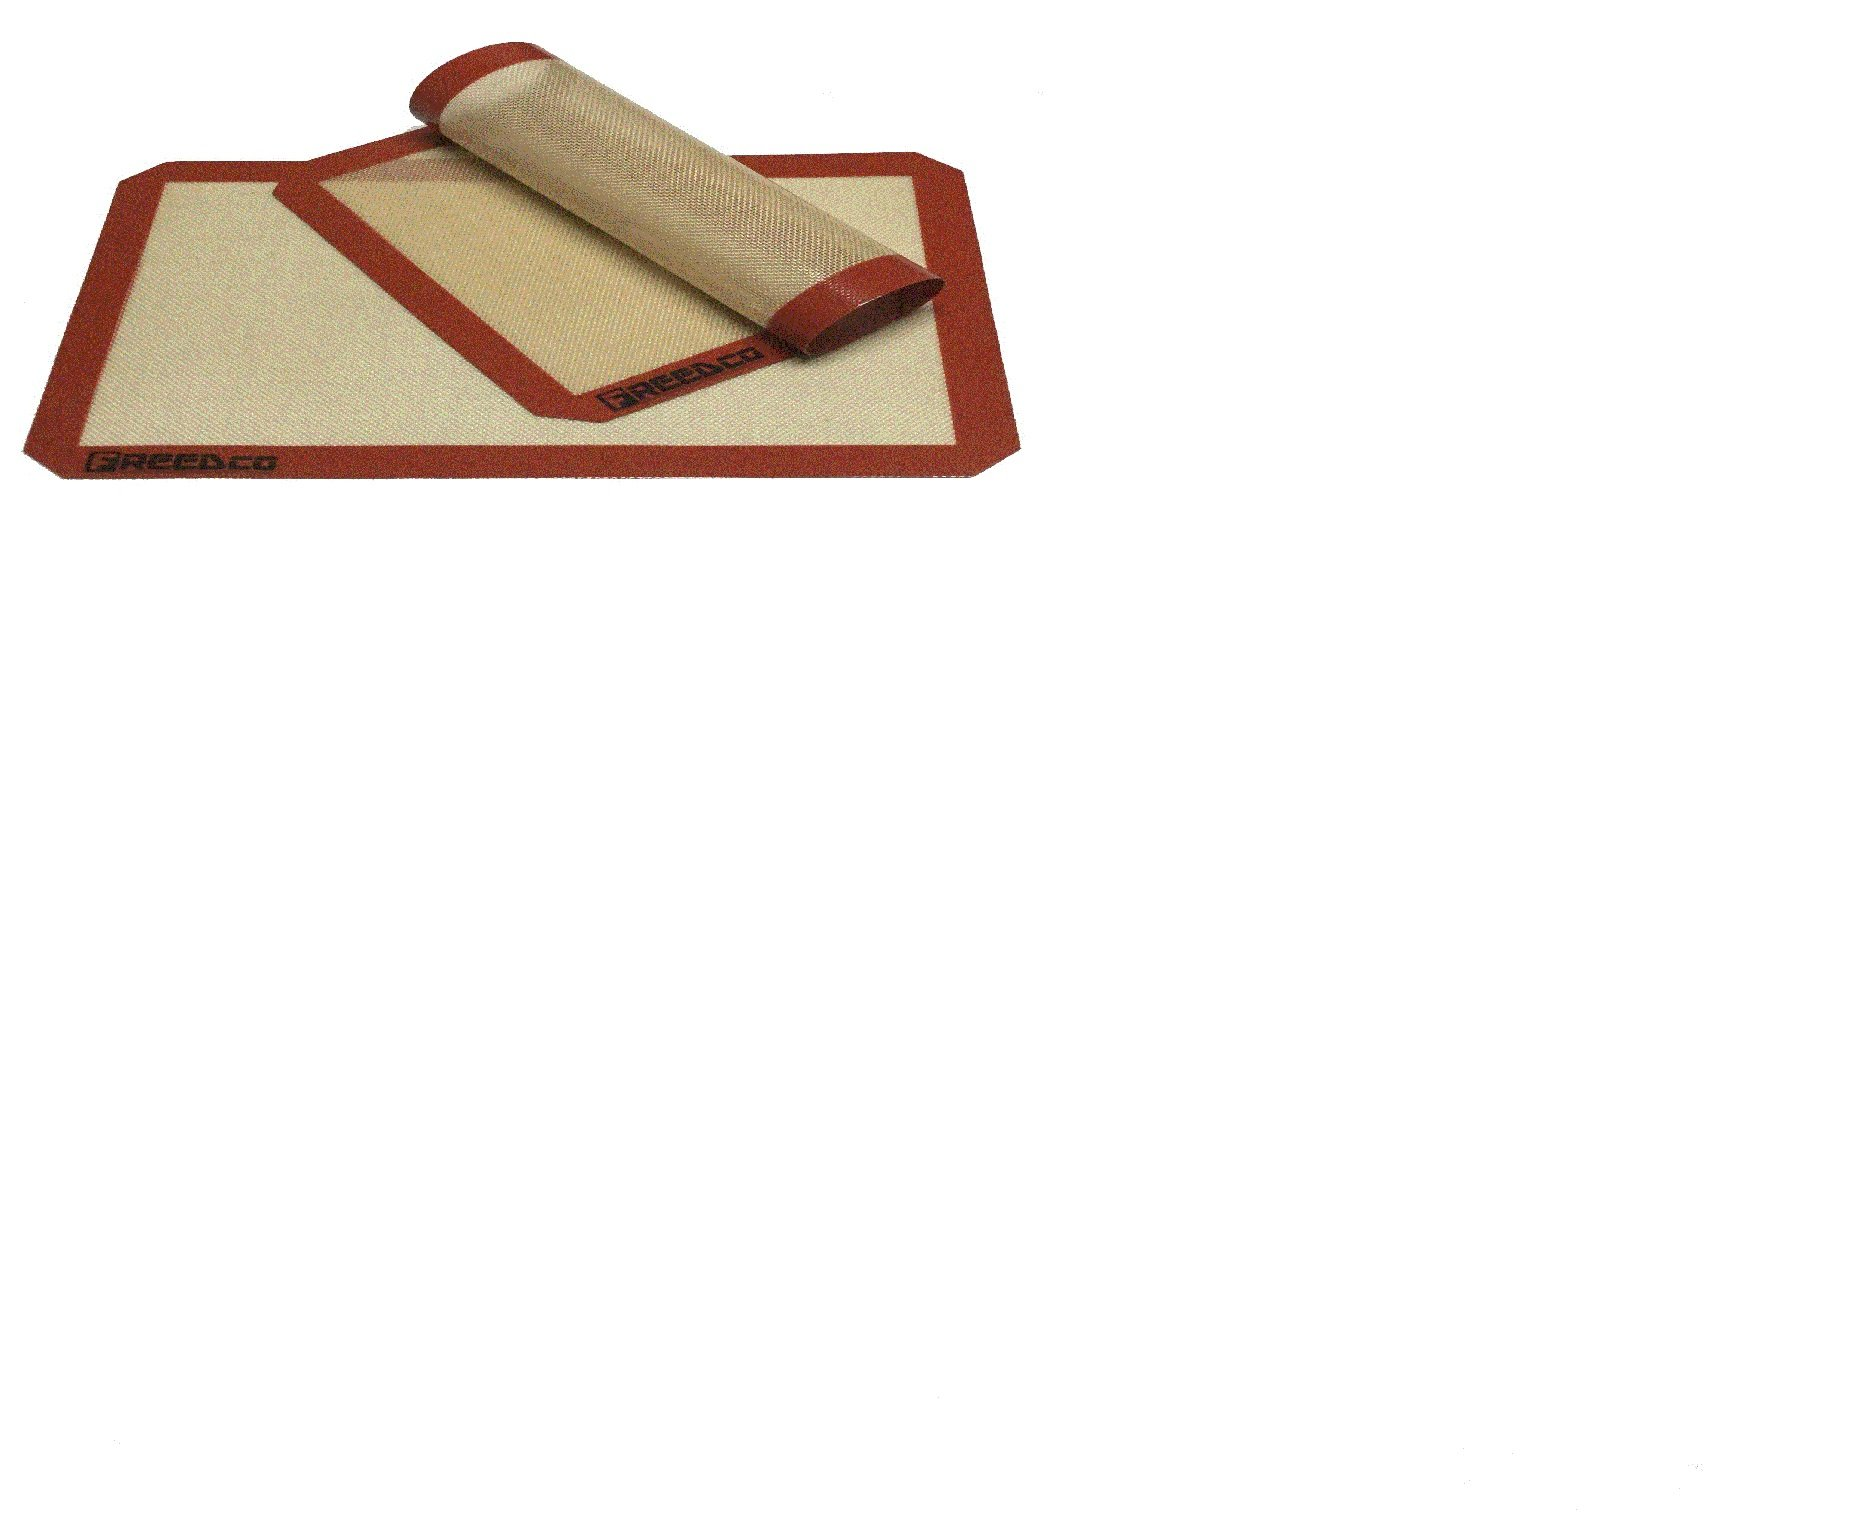 "Freedco Non-Stick Silicone Baking Mat, Cookie Sheet Size 11 5/8"" x 16.5"", 0.75mm Thick for Long Lasting, Set of 2 Pieces."